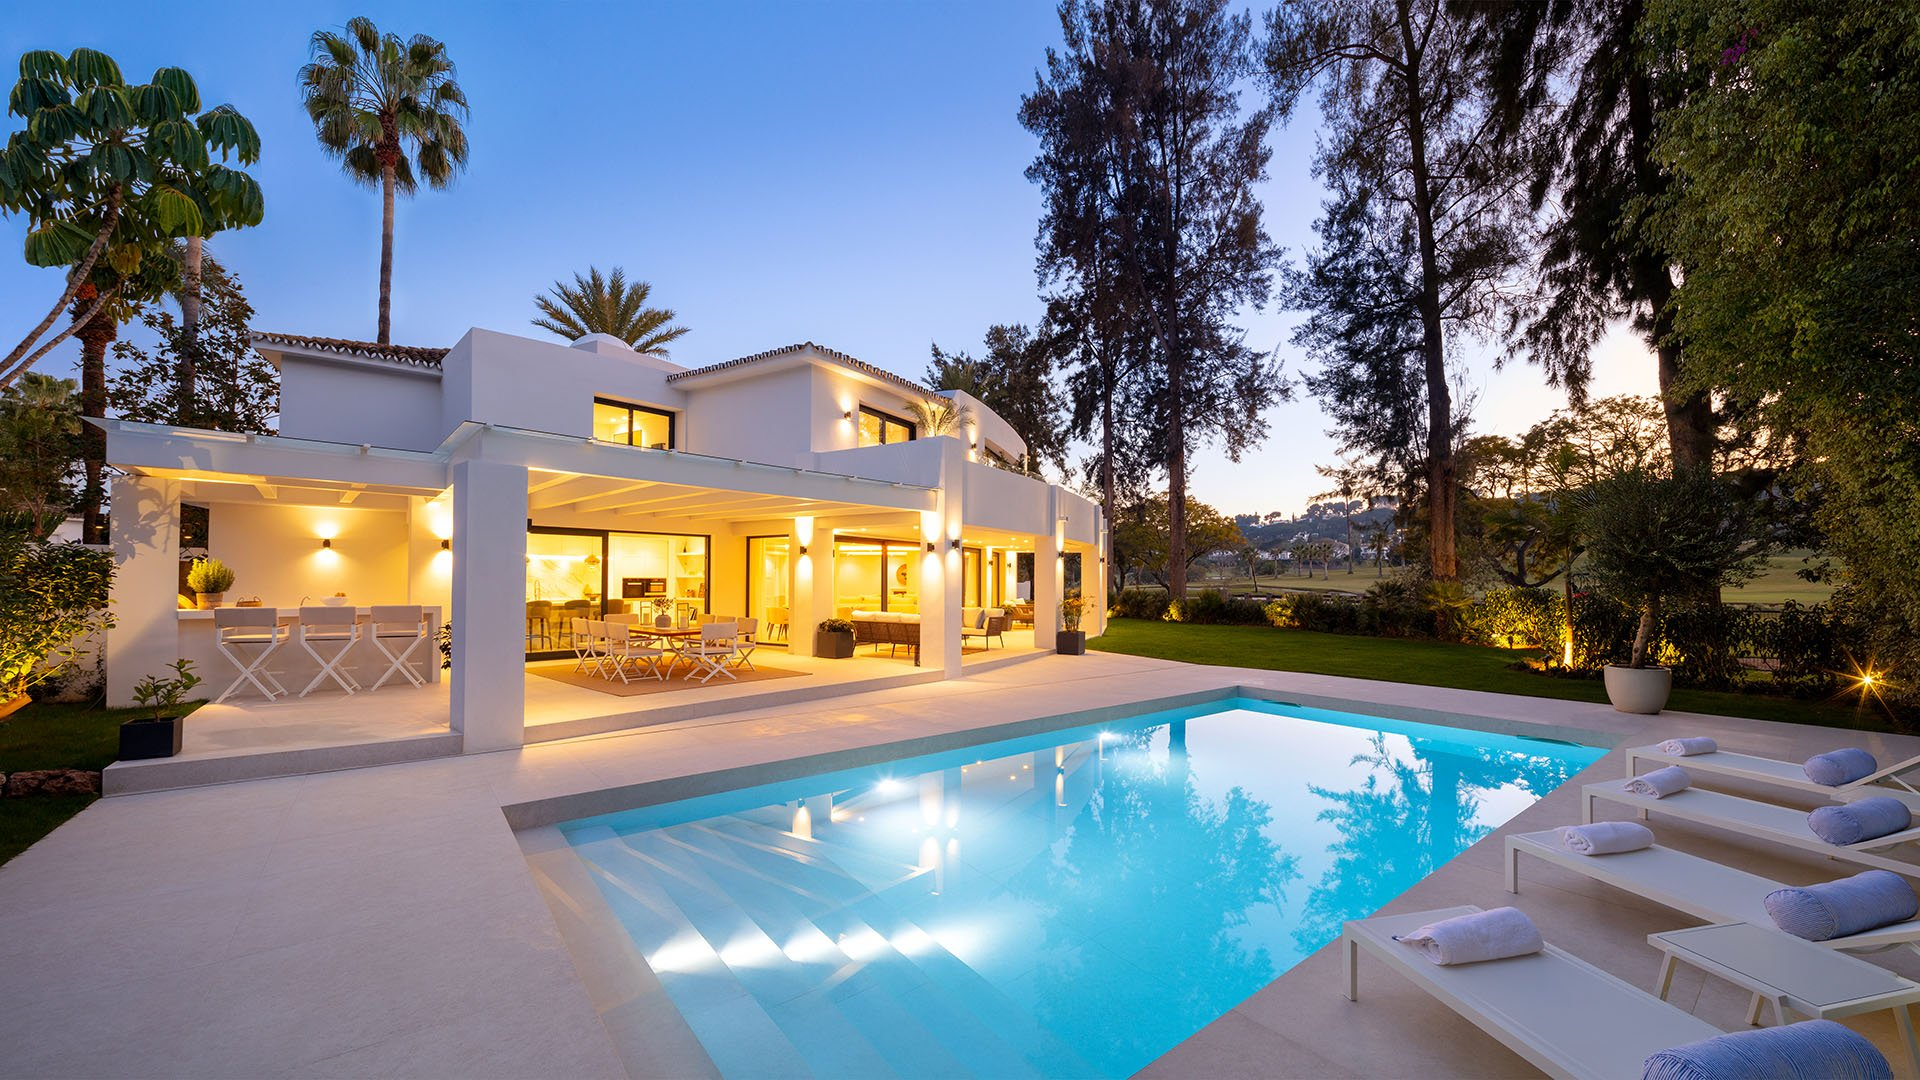 Villa Alexandra: Impressive villa in the heart of Nueva Andalucía's Golf Valley, Marbella